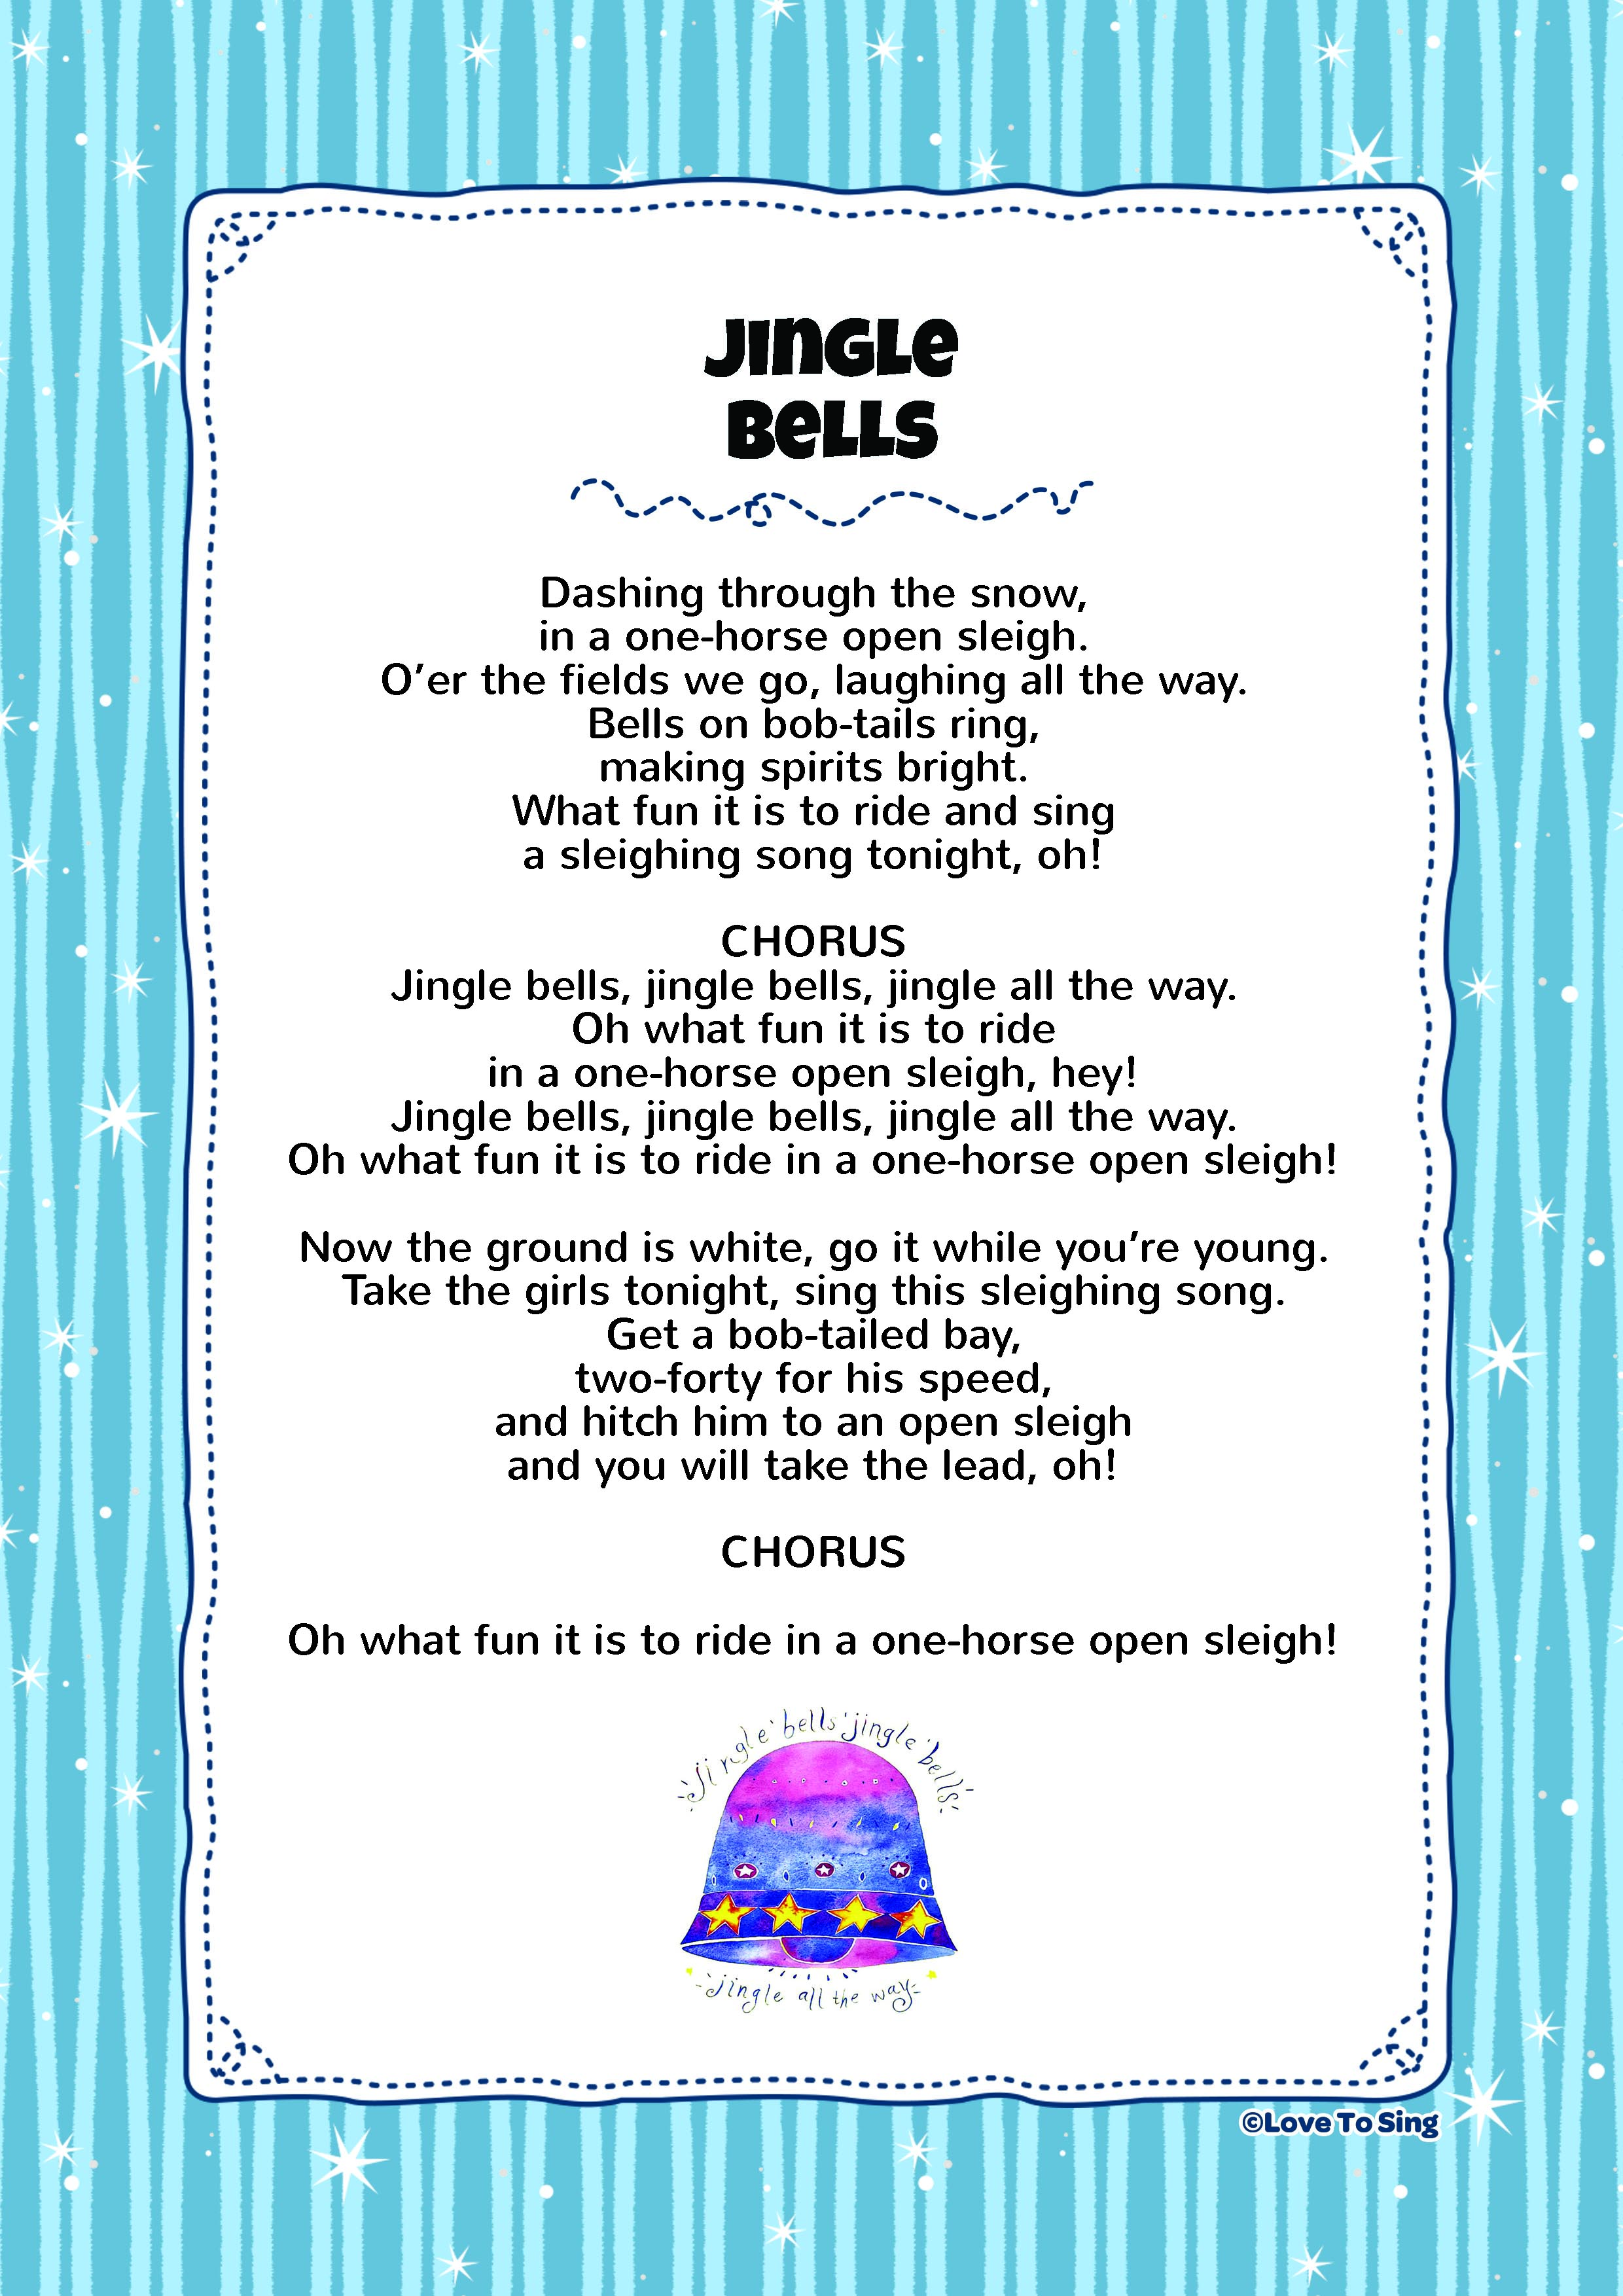 picture about Jingle Bells Lyrics Printable titled Jingle Bells Young children Video clip Tune with No cost Lyrics Pursuits!